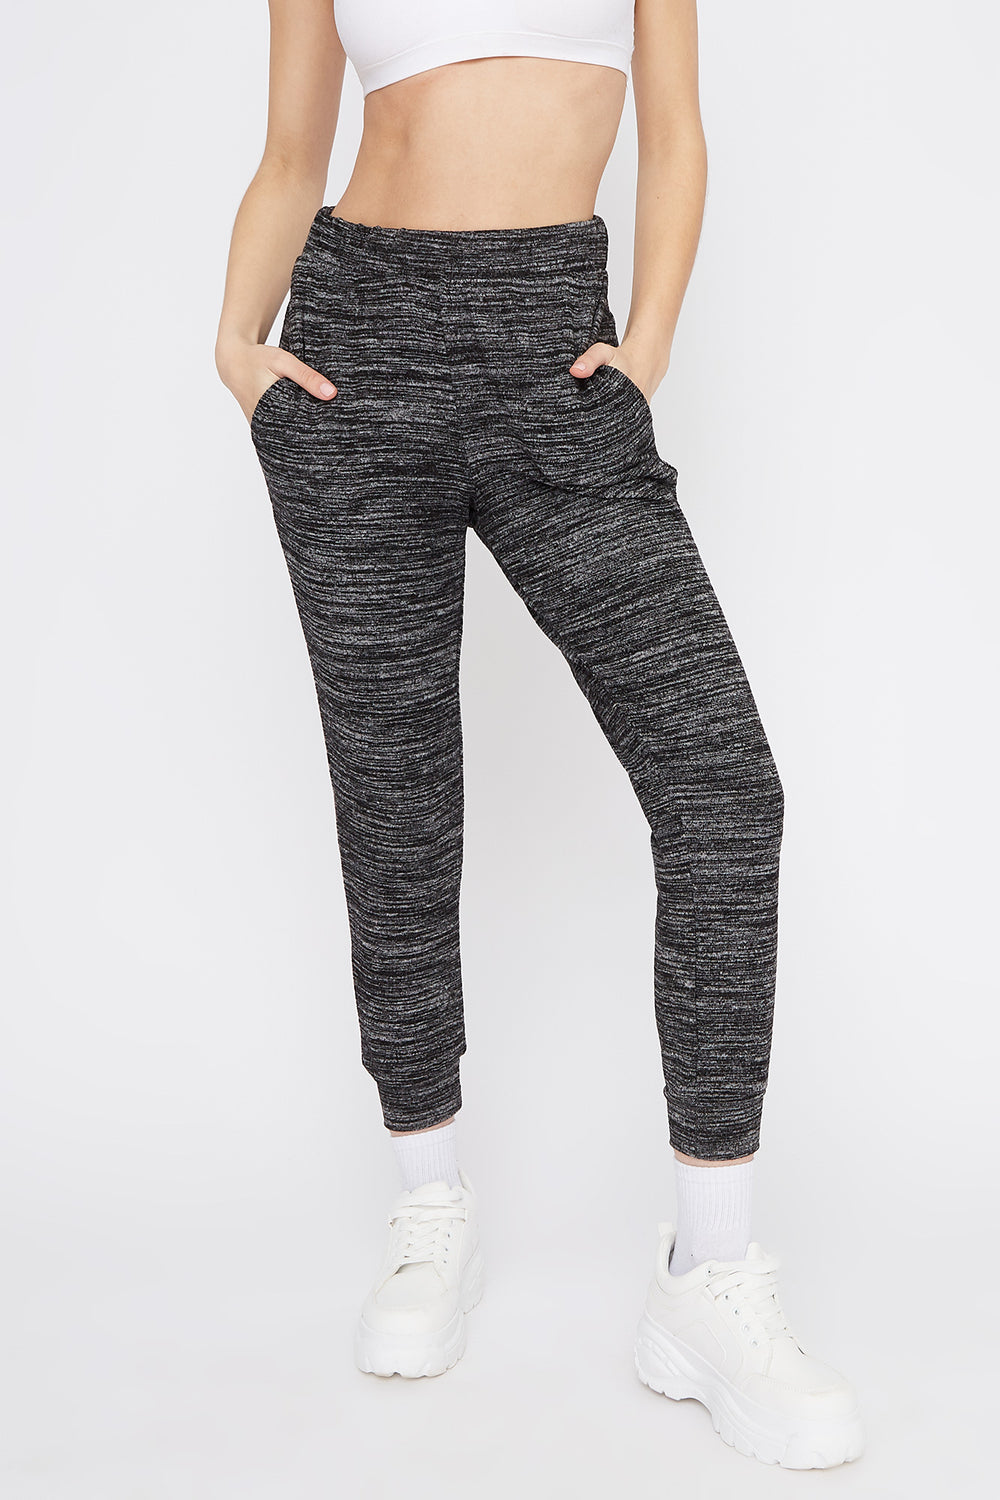 Soft Space Dye Jogger Black with White